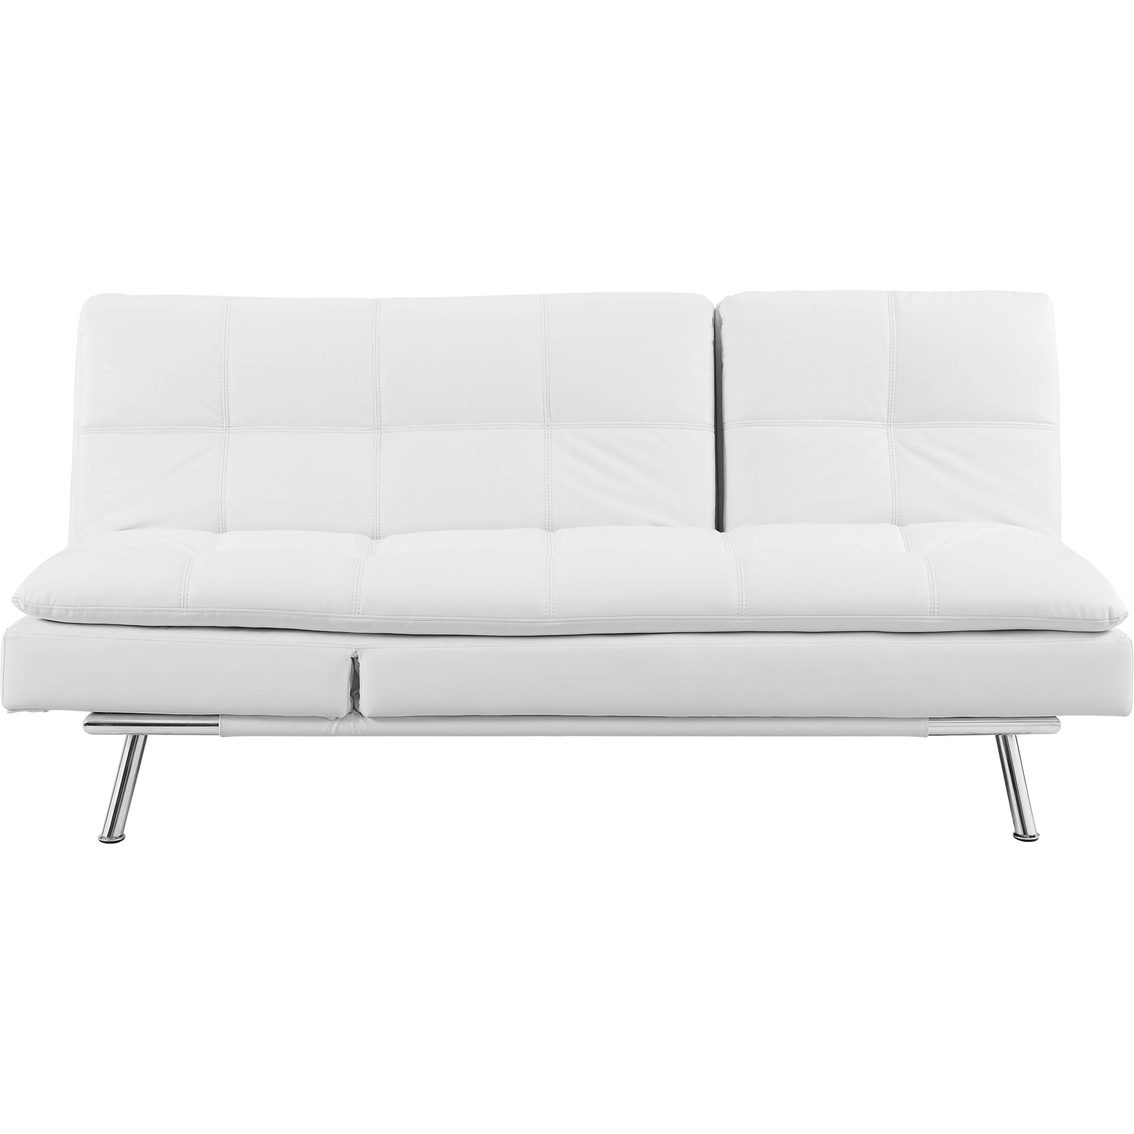 Remarkable Serta Palermo Convertible White Leather Sleeper Chaise Sofa Gmtry Best Dining Table And Chair Ideas Images Gmtryco